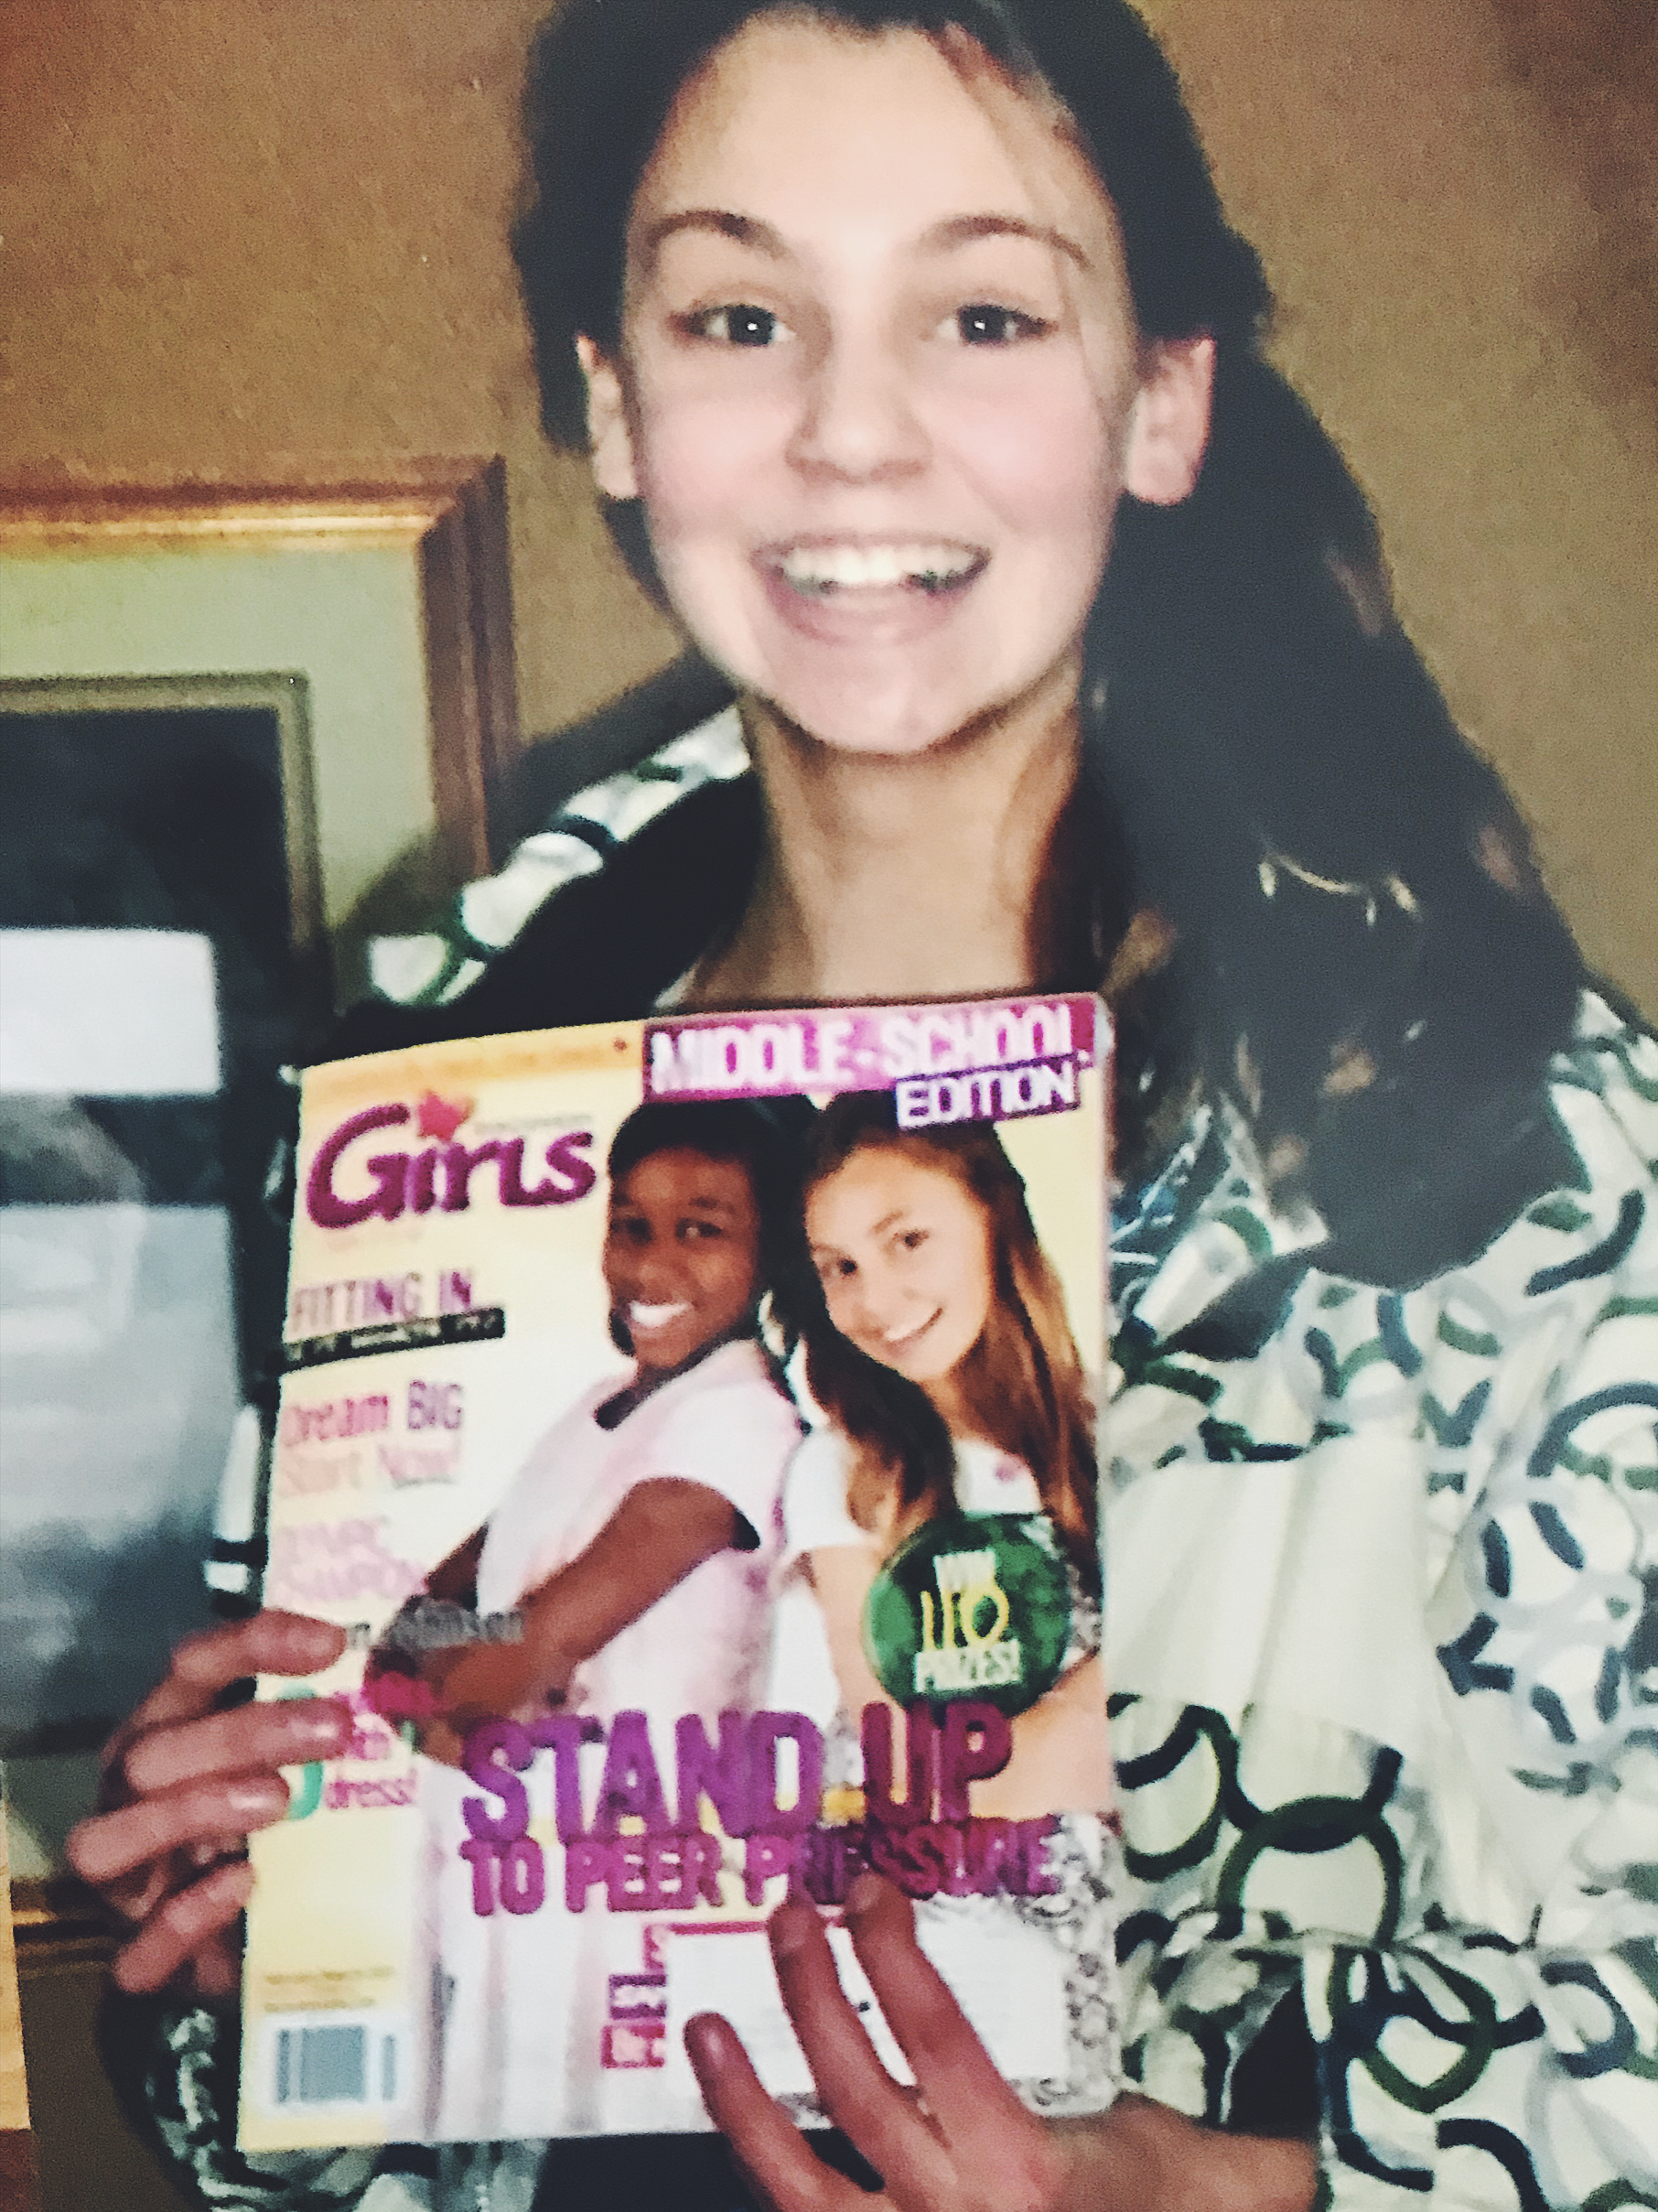 Maddy on the cover of Girls magazine